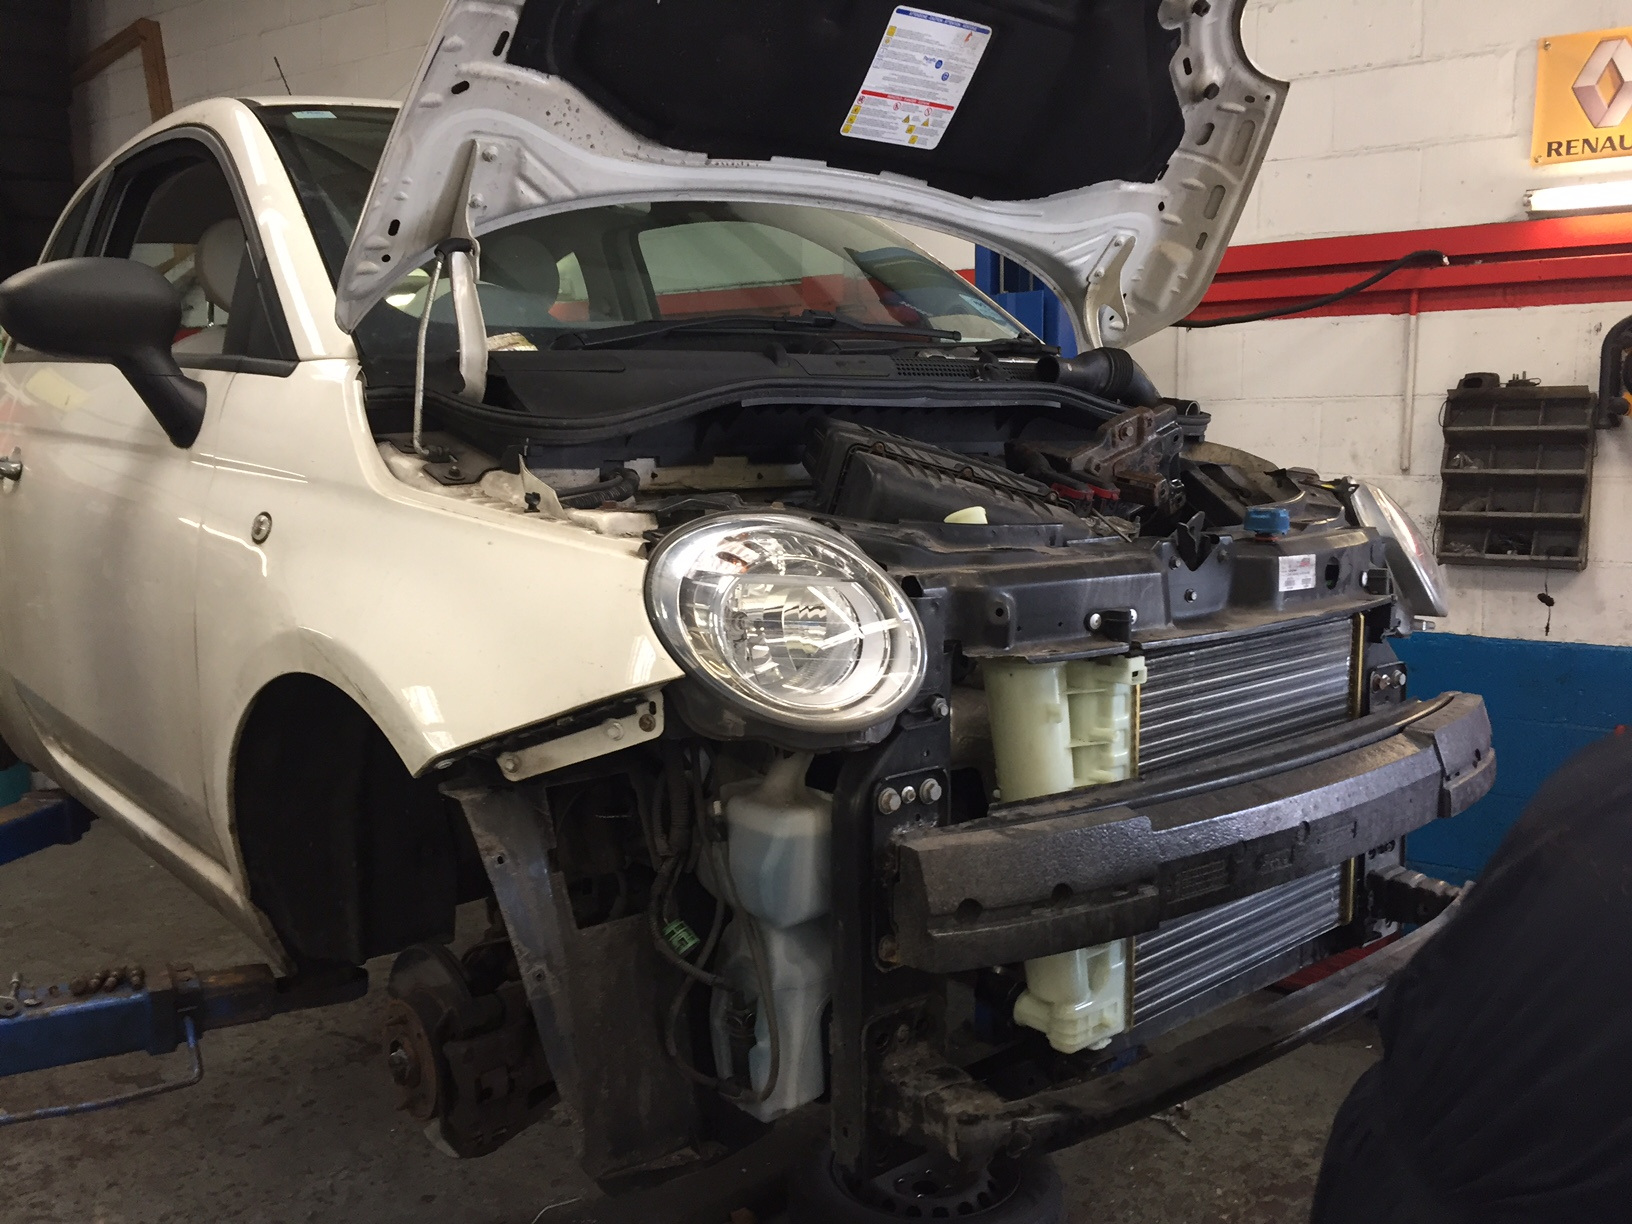 hight resolution of this fiat 500 came into us for a service and during our inspection it soon became apparent it had issues with its cooling system the coolant header tank